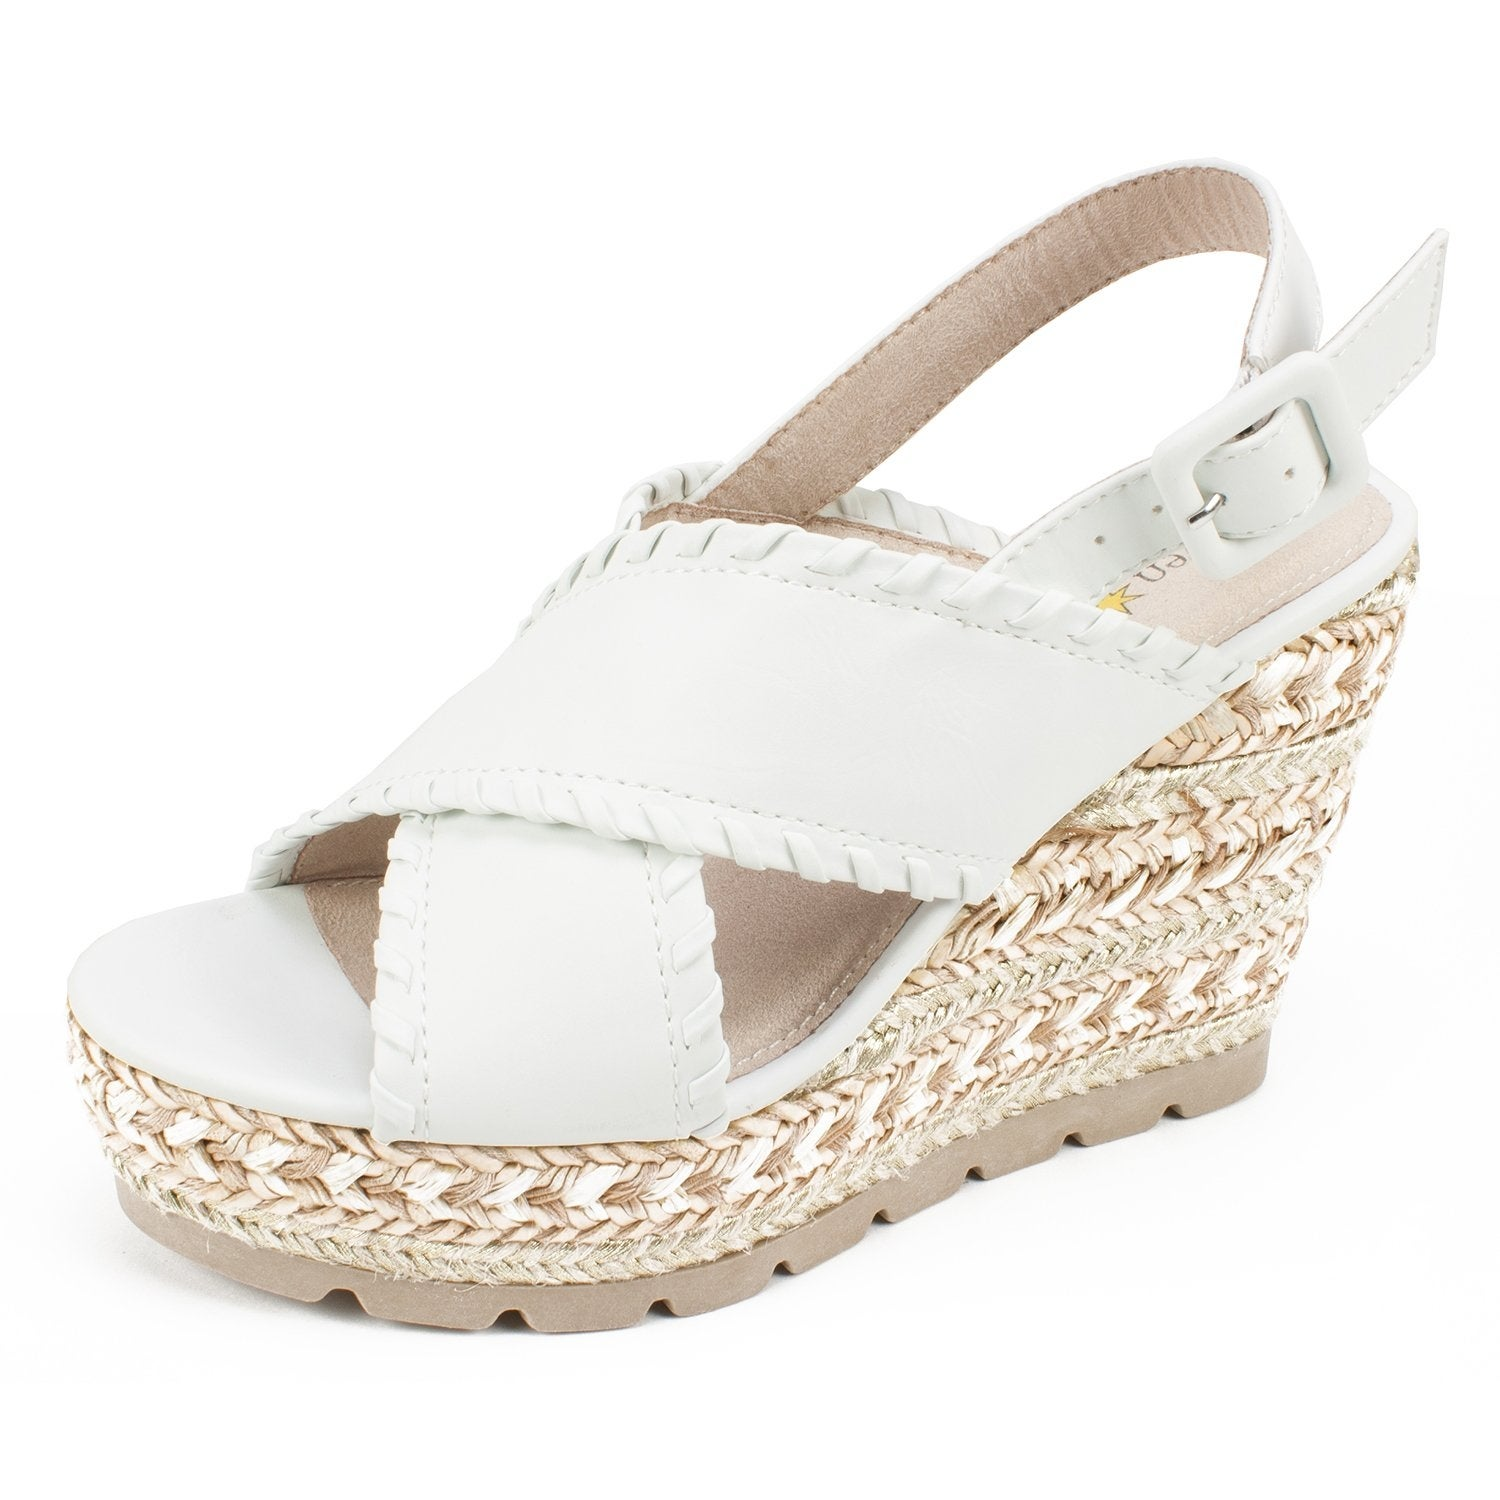 07fe3fb7443 Buy Platform Women s Sandals Online at Overstock